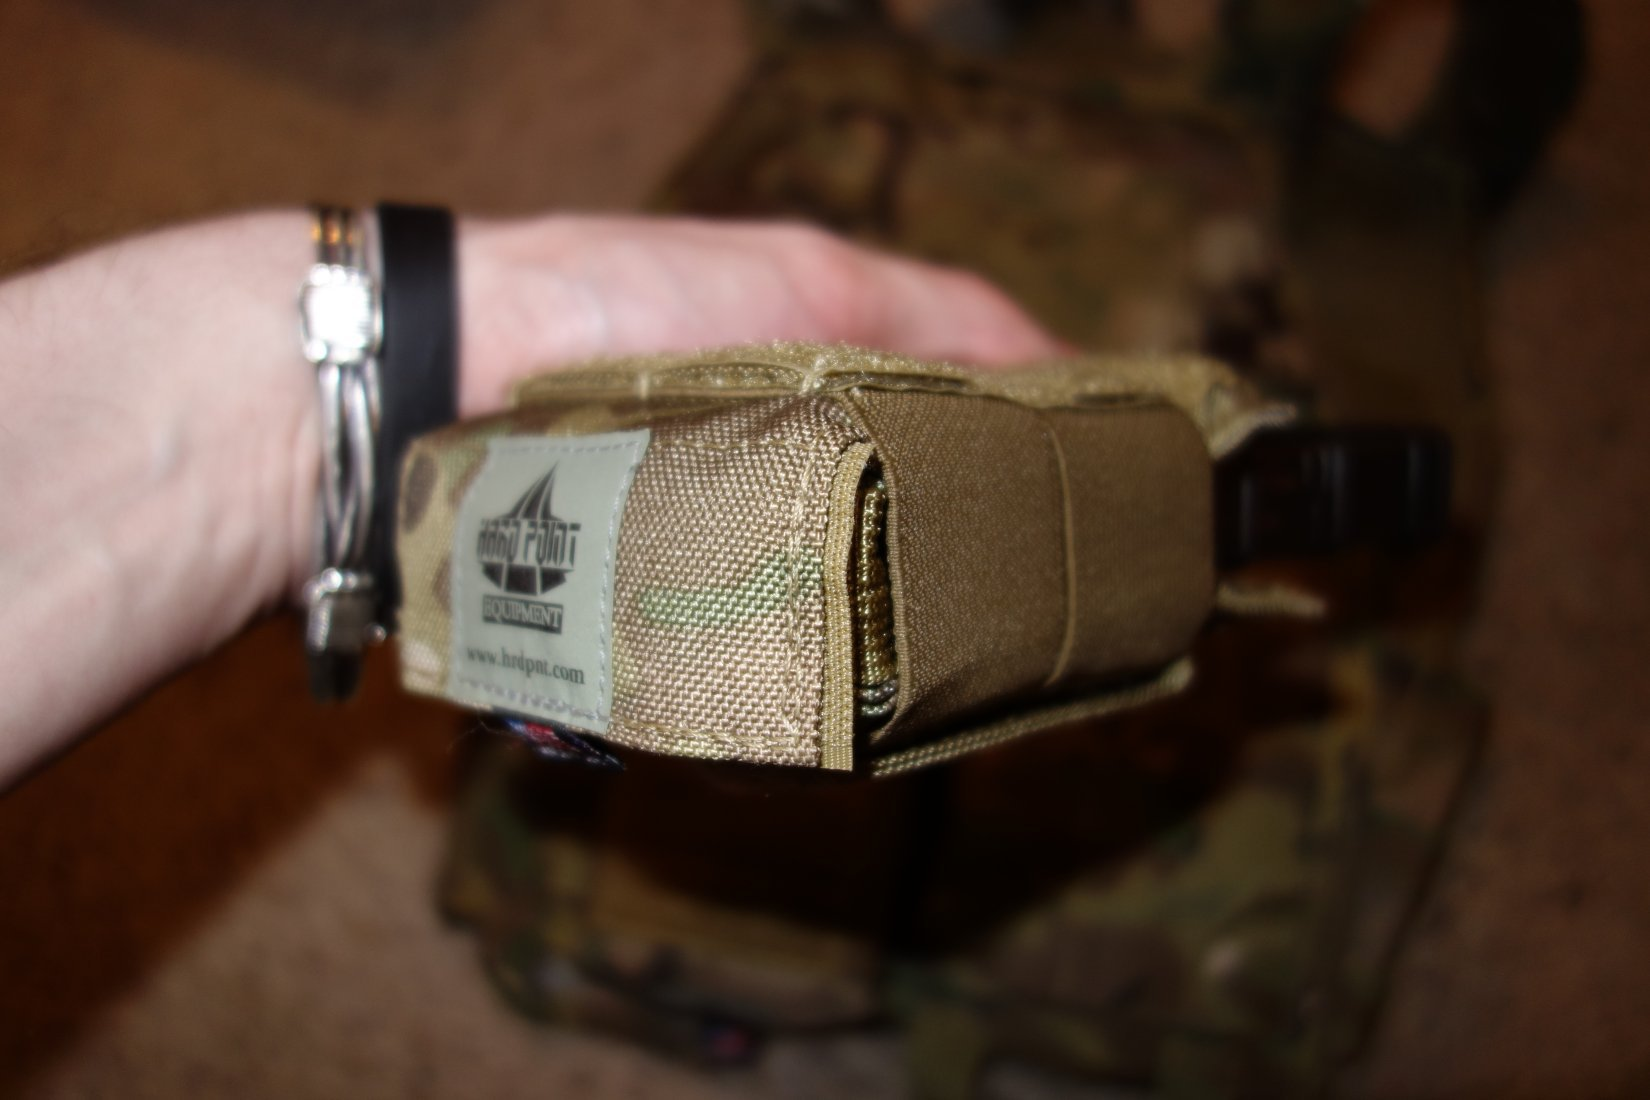 Hard Point Equipment Universal Mag Carrier UMC Universal Magazine Carrier Mag Pouch for Tactical Body Armor Carriers and Battle Belts David Crane DefenseReview.com DR 23 Tired of Tacos? Load Your Tactical Vest (Armor Plate Carrier) with the Hard Point Universal Mag Carrier (UMC): One Modular Magazine Pouch Handles 5.56mm and 7.62mm Rifle Magazines and Pistol Mags